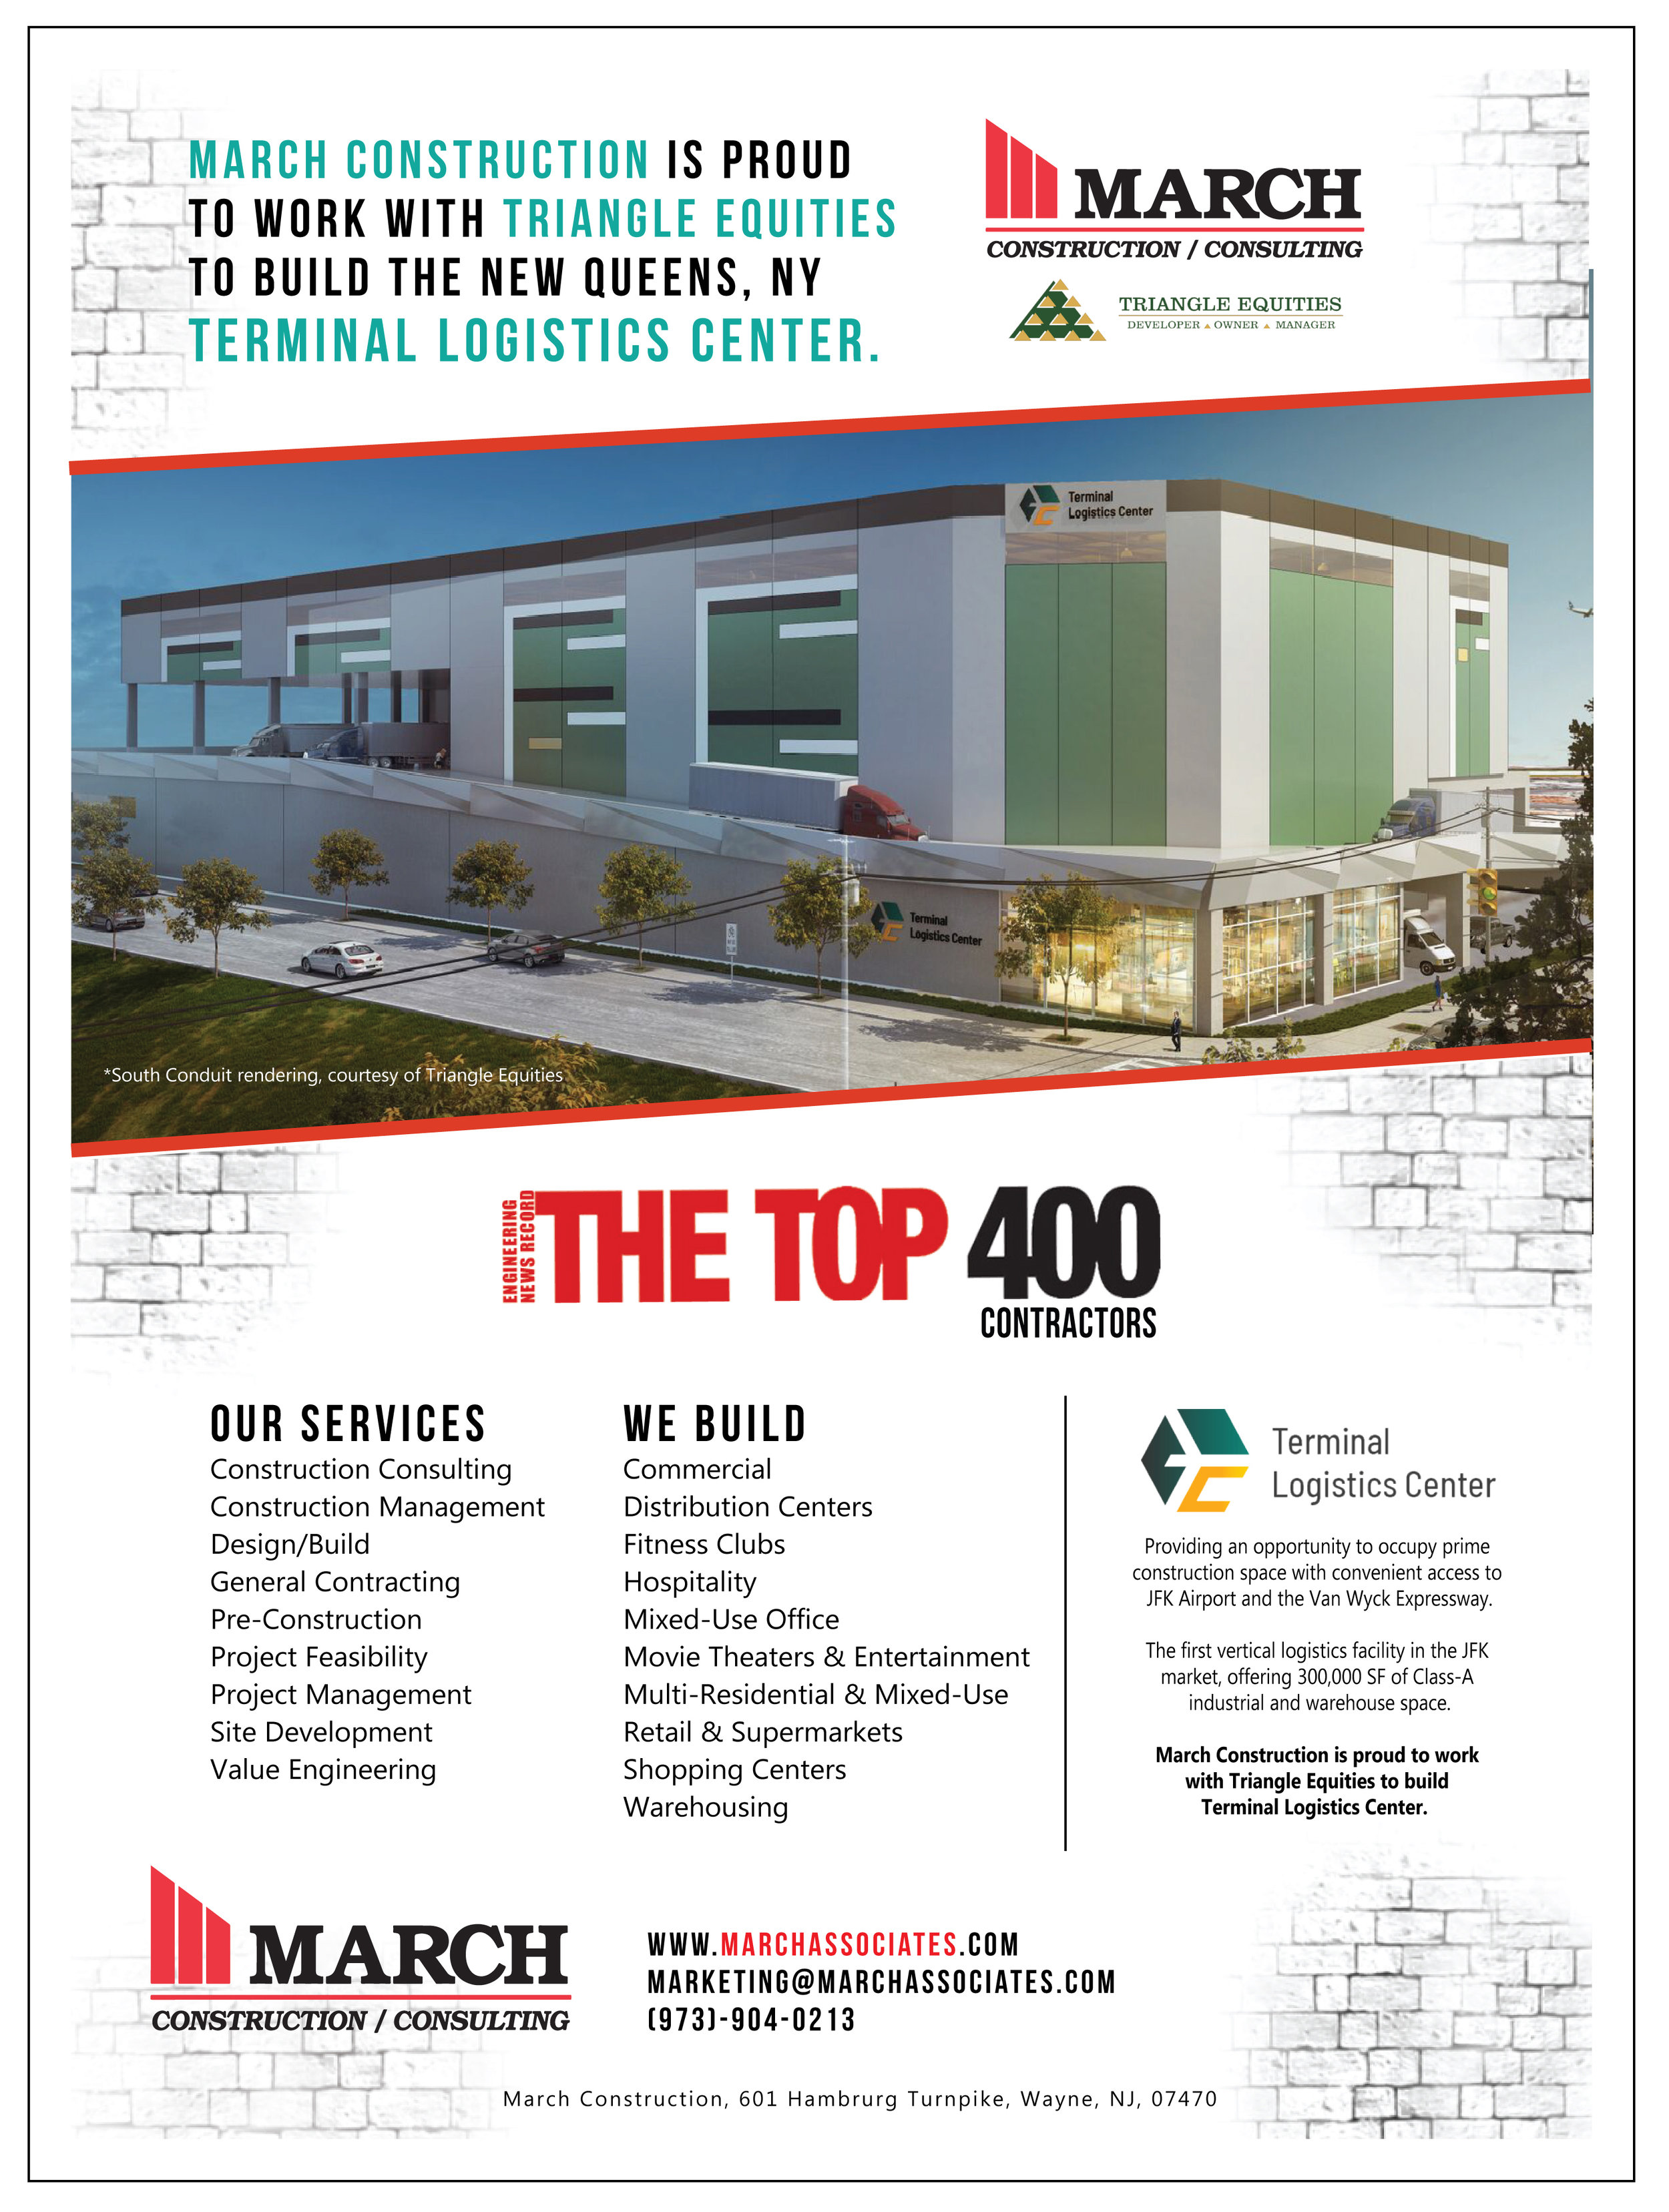 March Construction is proud to work with Triangle Equities to build  Terminal Logistics Center.  March Construction--offering construction consulting, construction management, design/build, owner's representative services,  and more...  partners with Triangle Equities to build  Terminal Logistics Center in Brooklyn, NY.